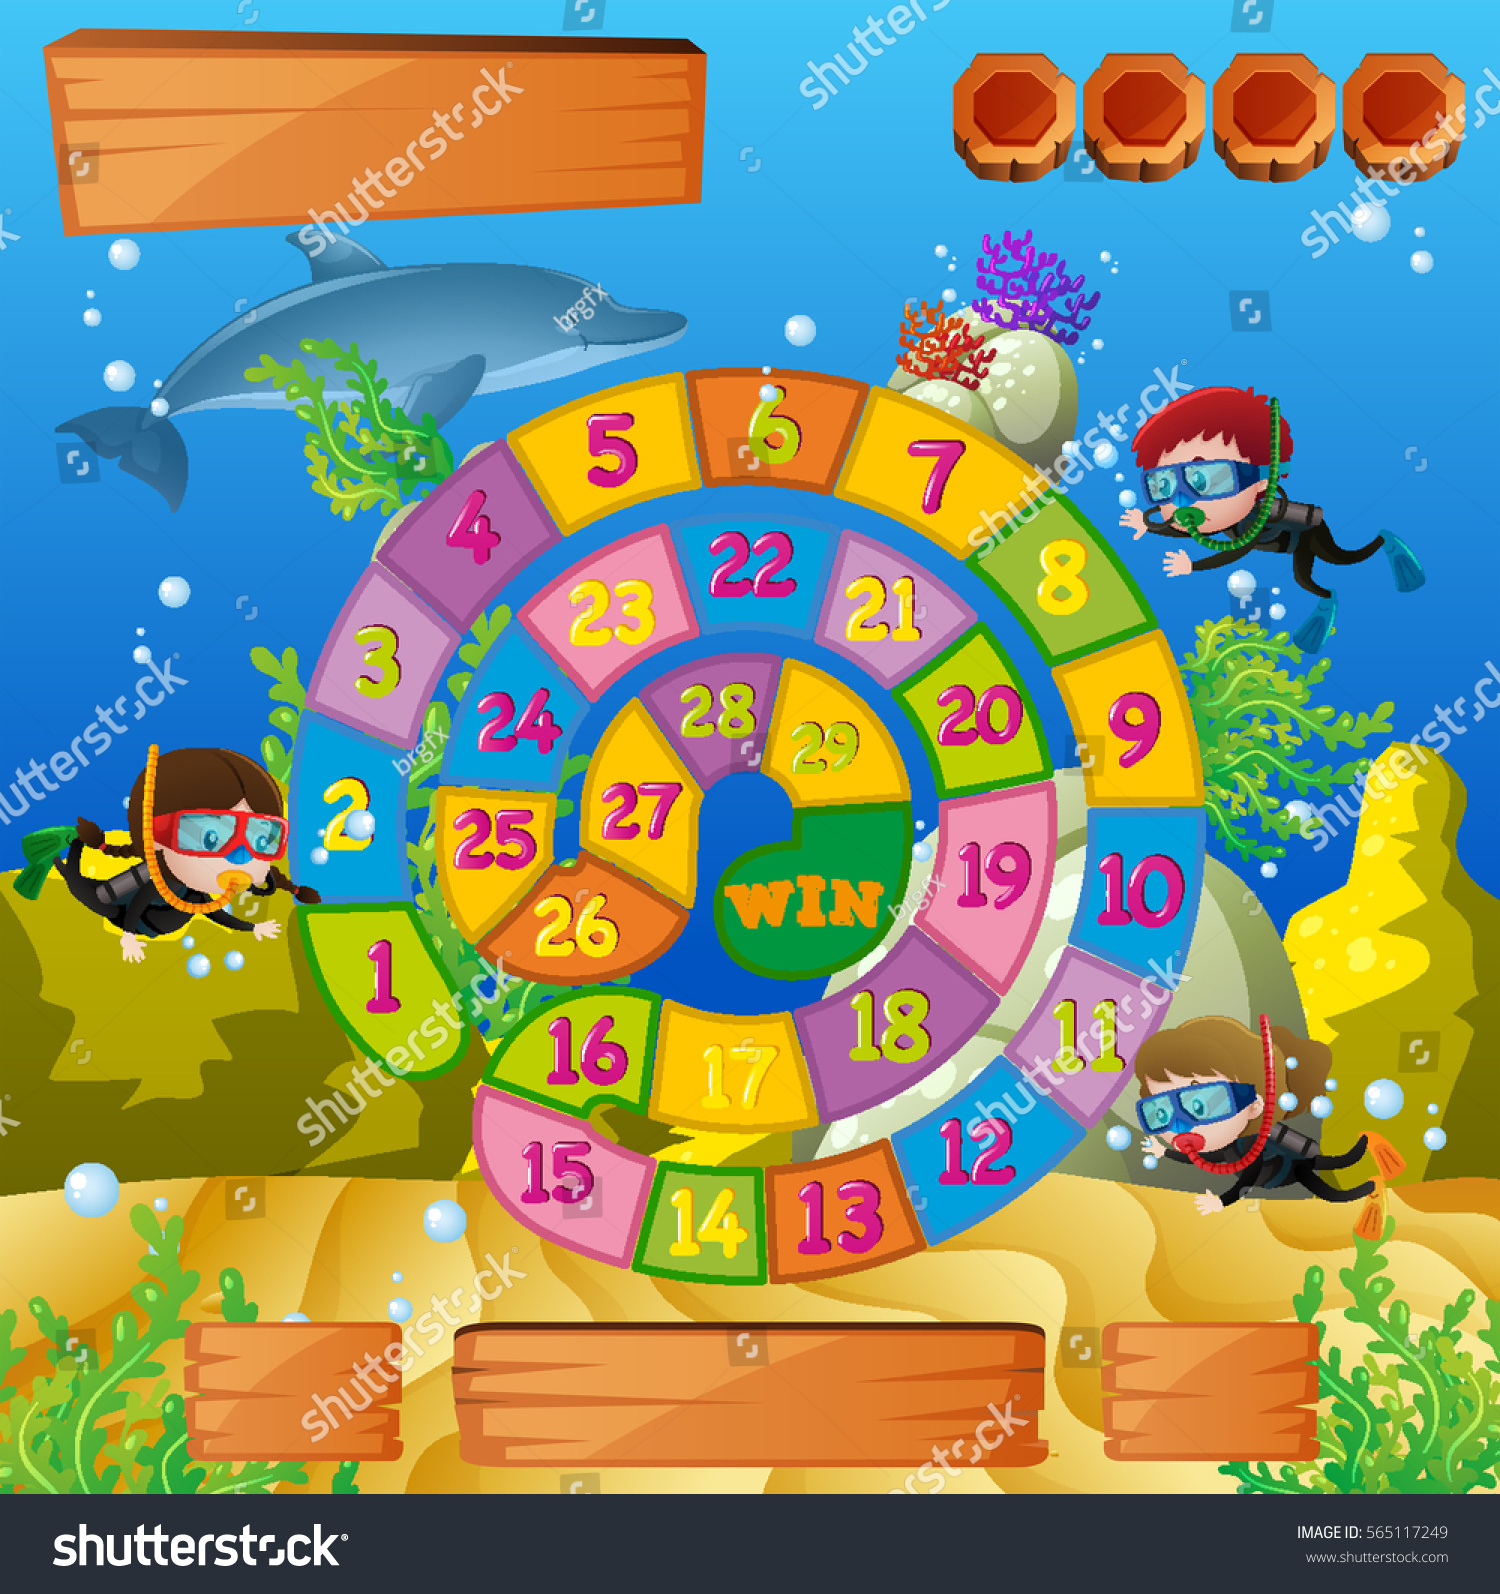 Boardgame Template Kids Diving Under Sea Stock Vector